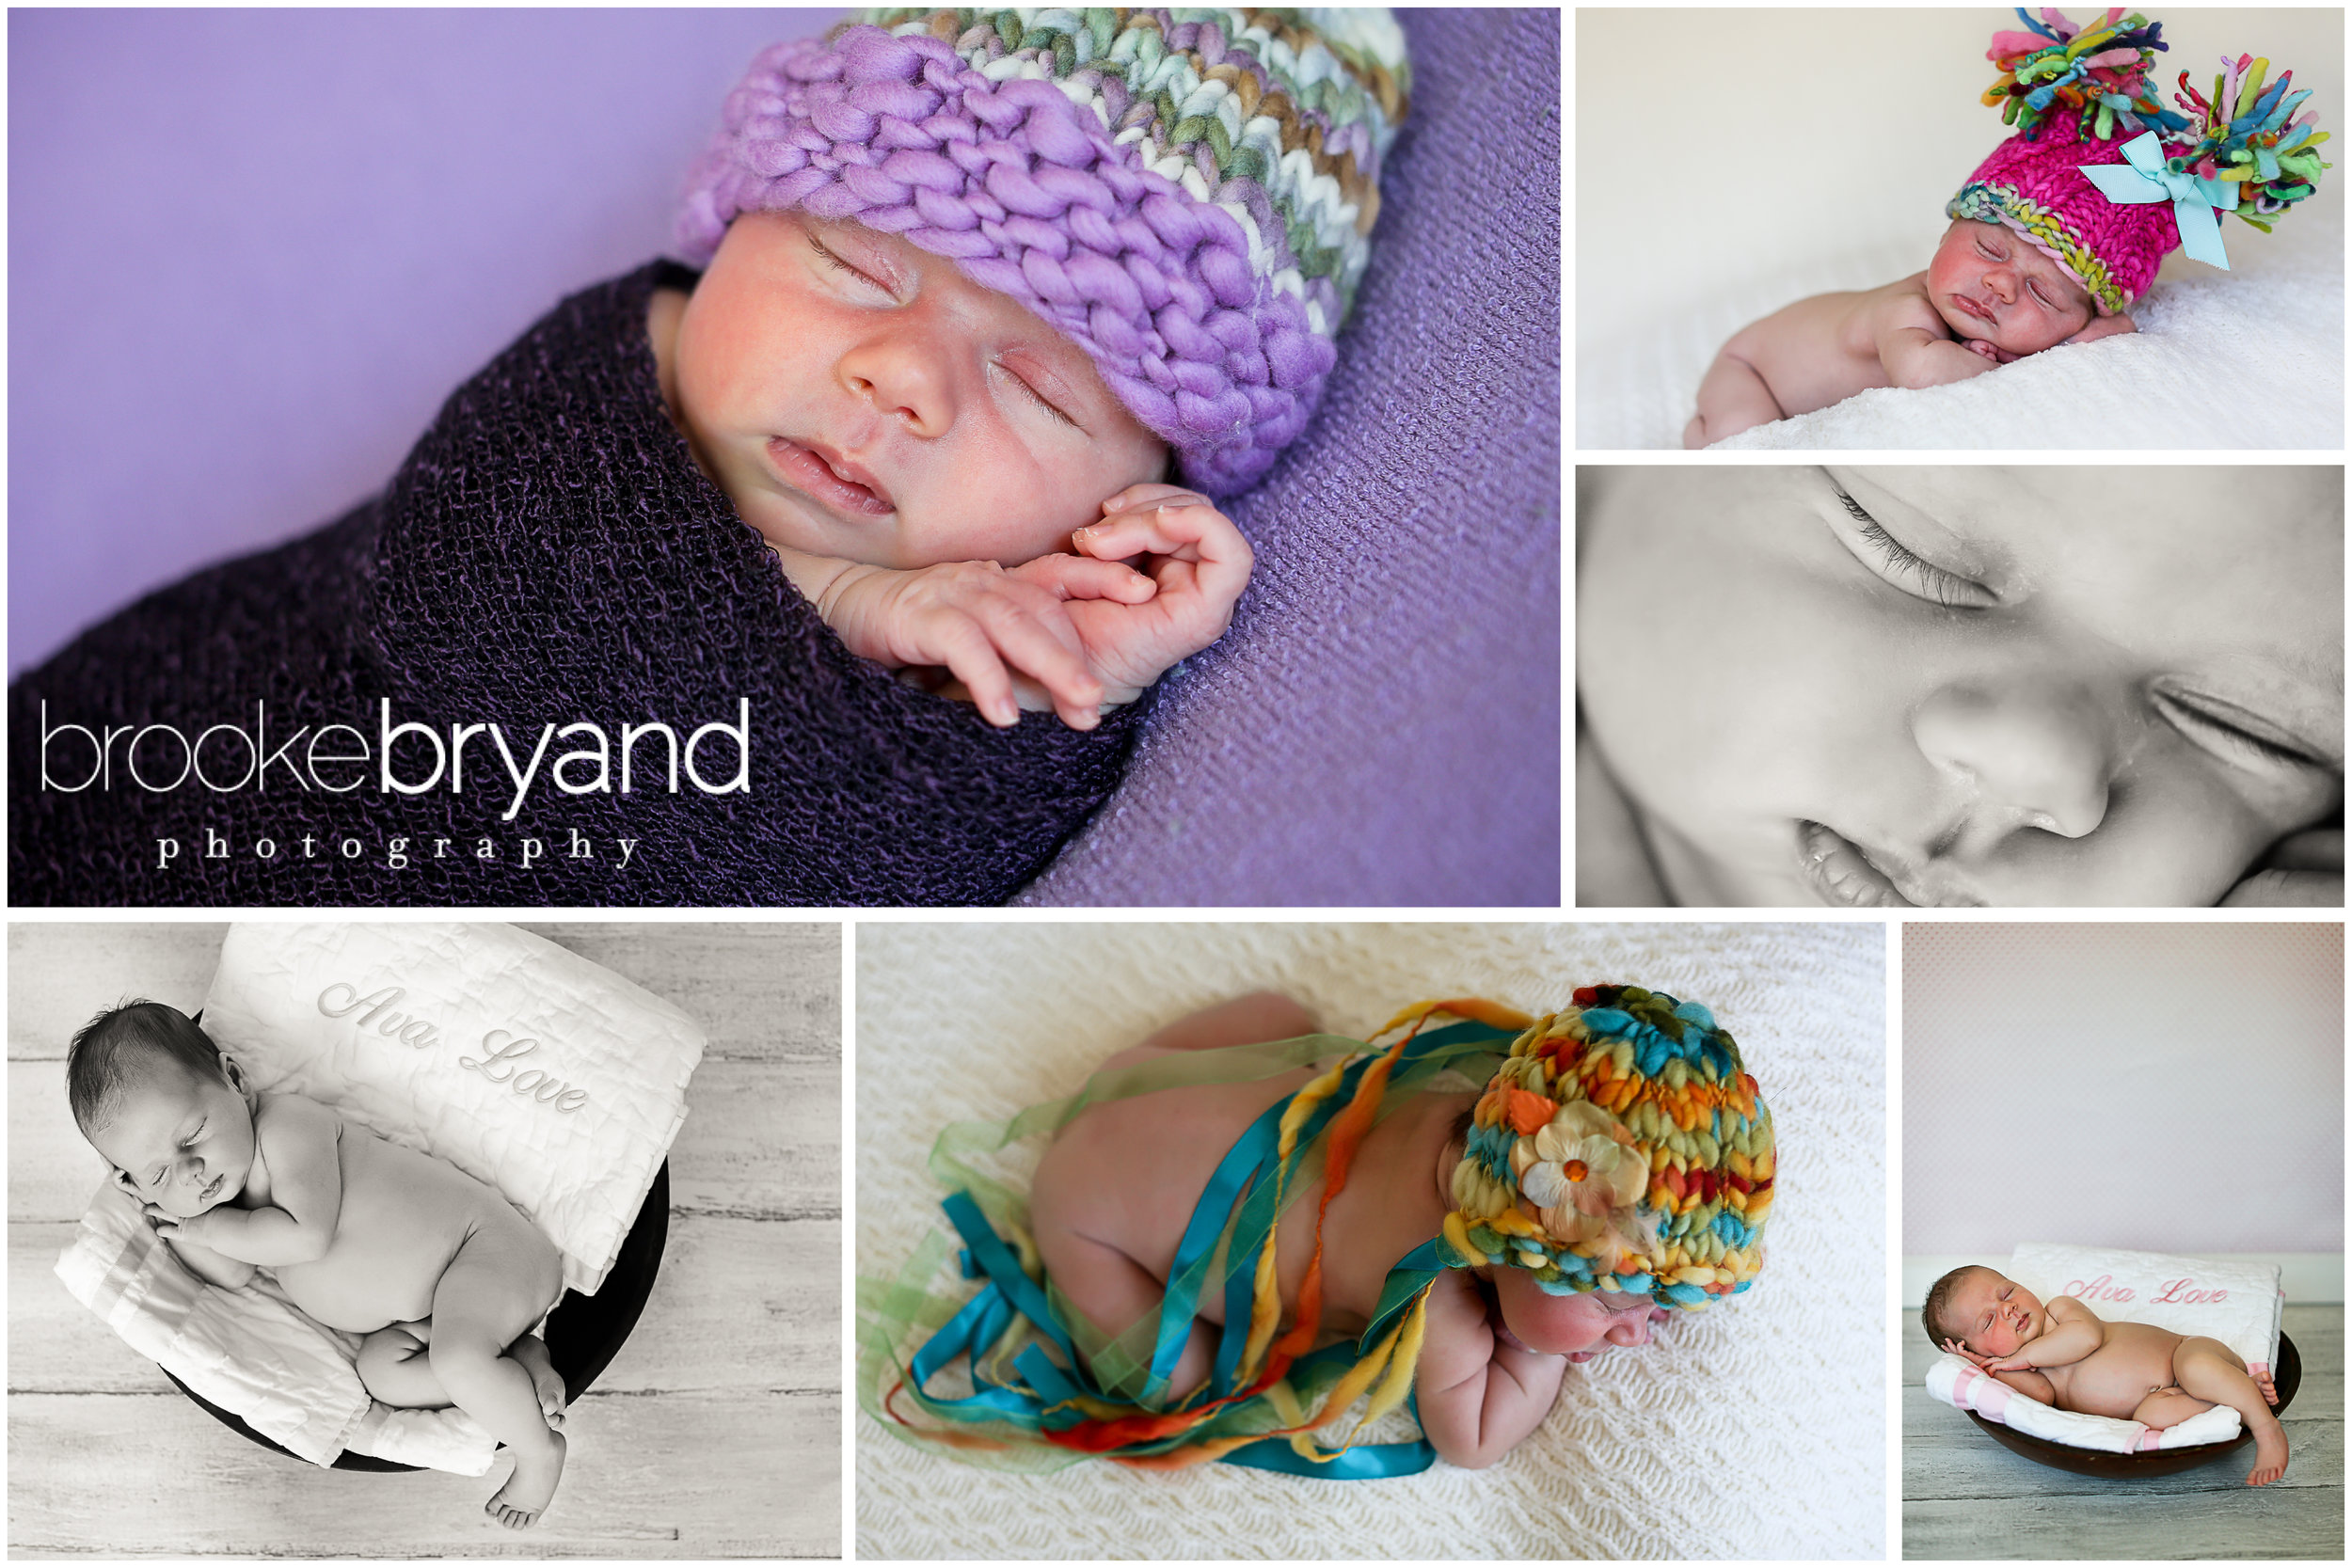 6-up-ava-brooke-bryand-photography-san-francisco-newborn-photography.jpg